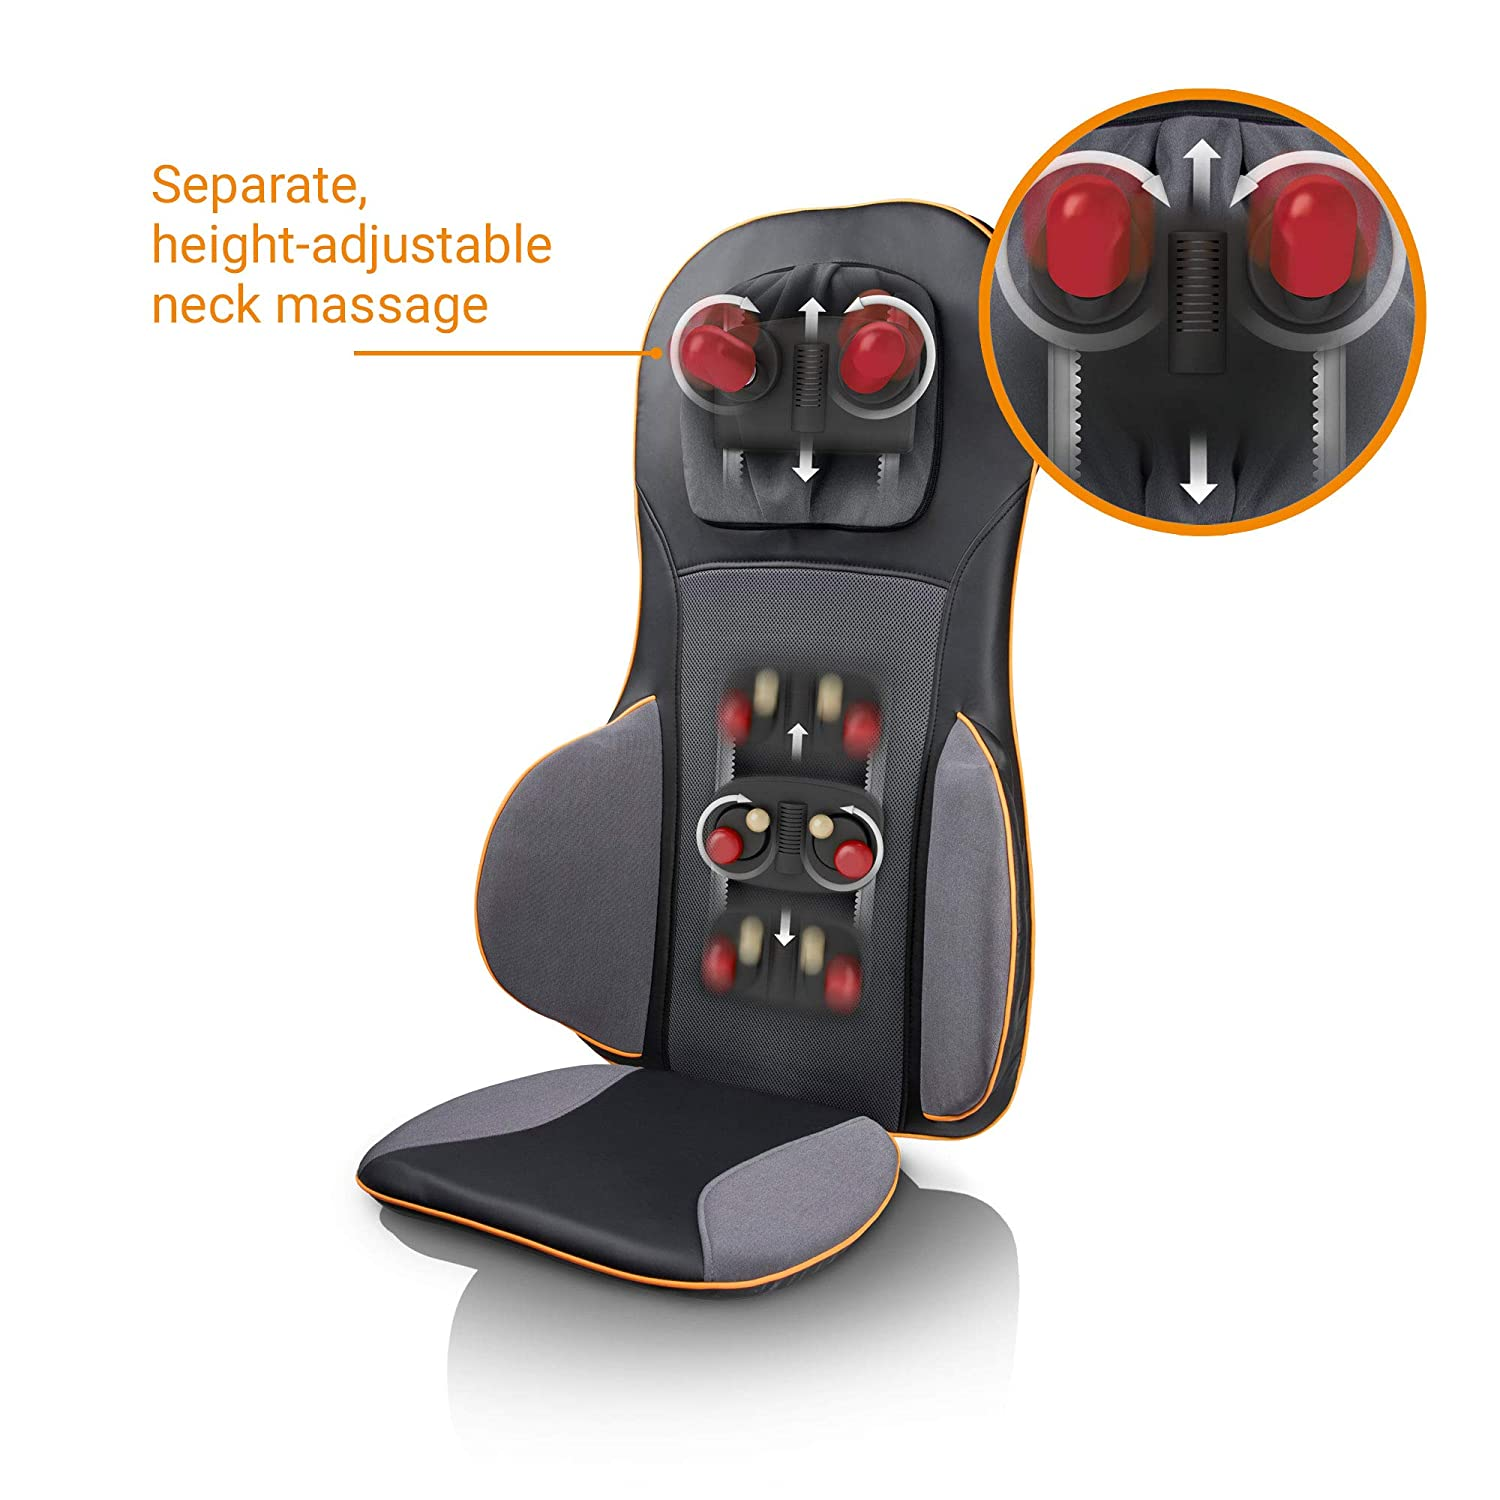 Massageumfang der Medisana MC 825 Shiatsu Massagematte